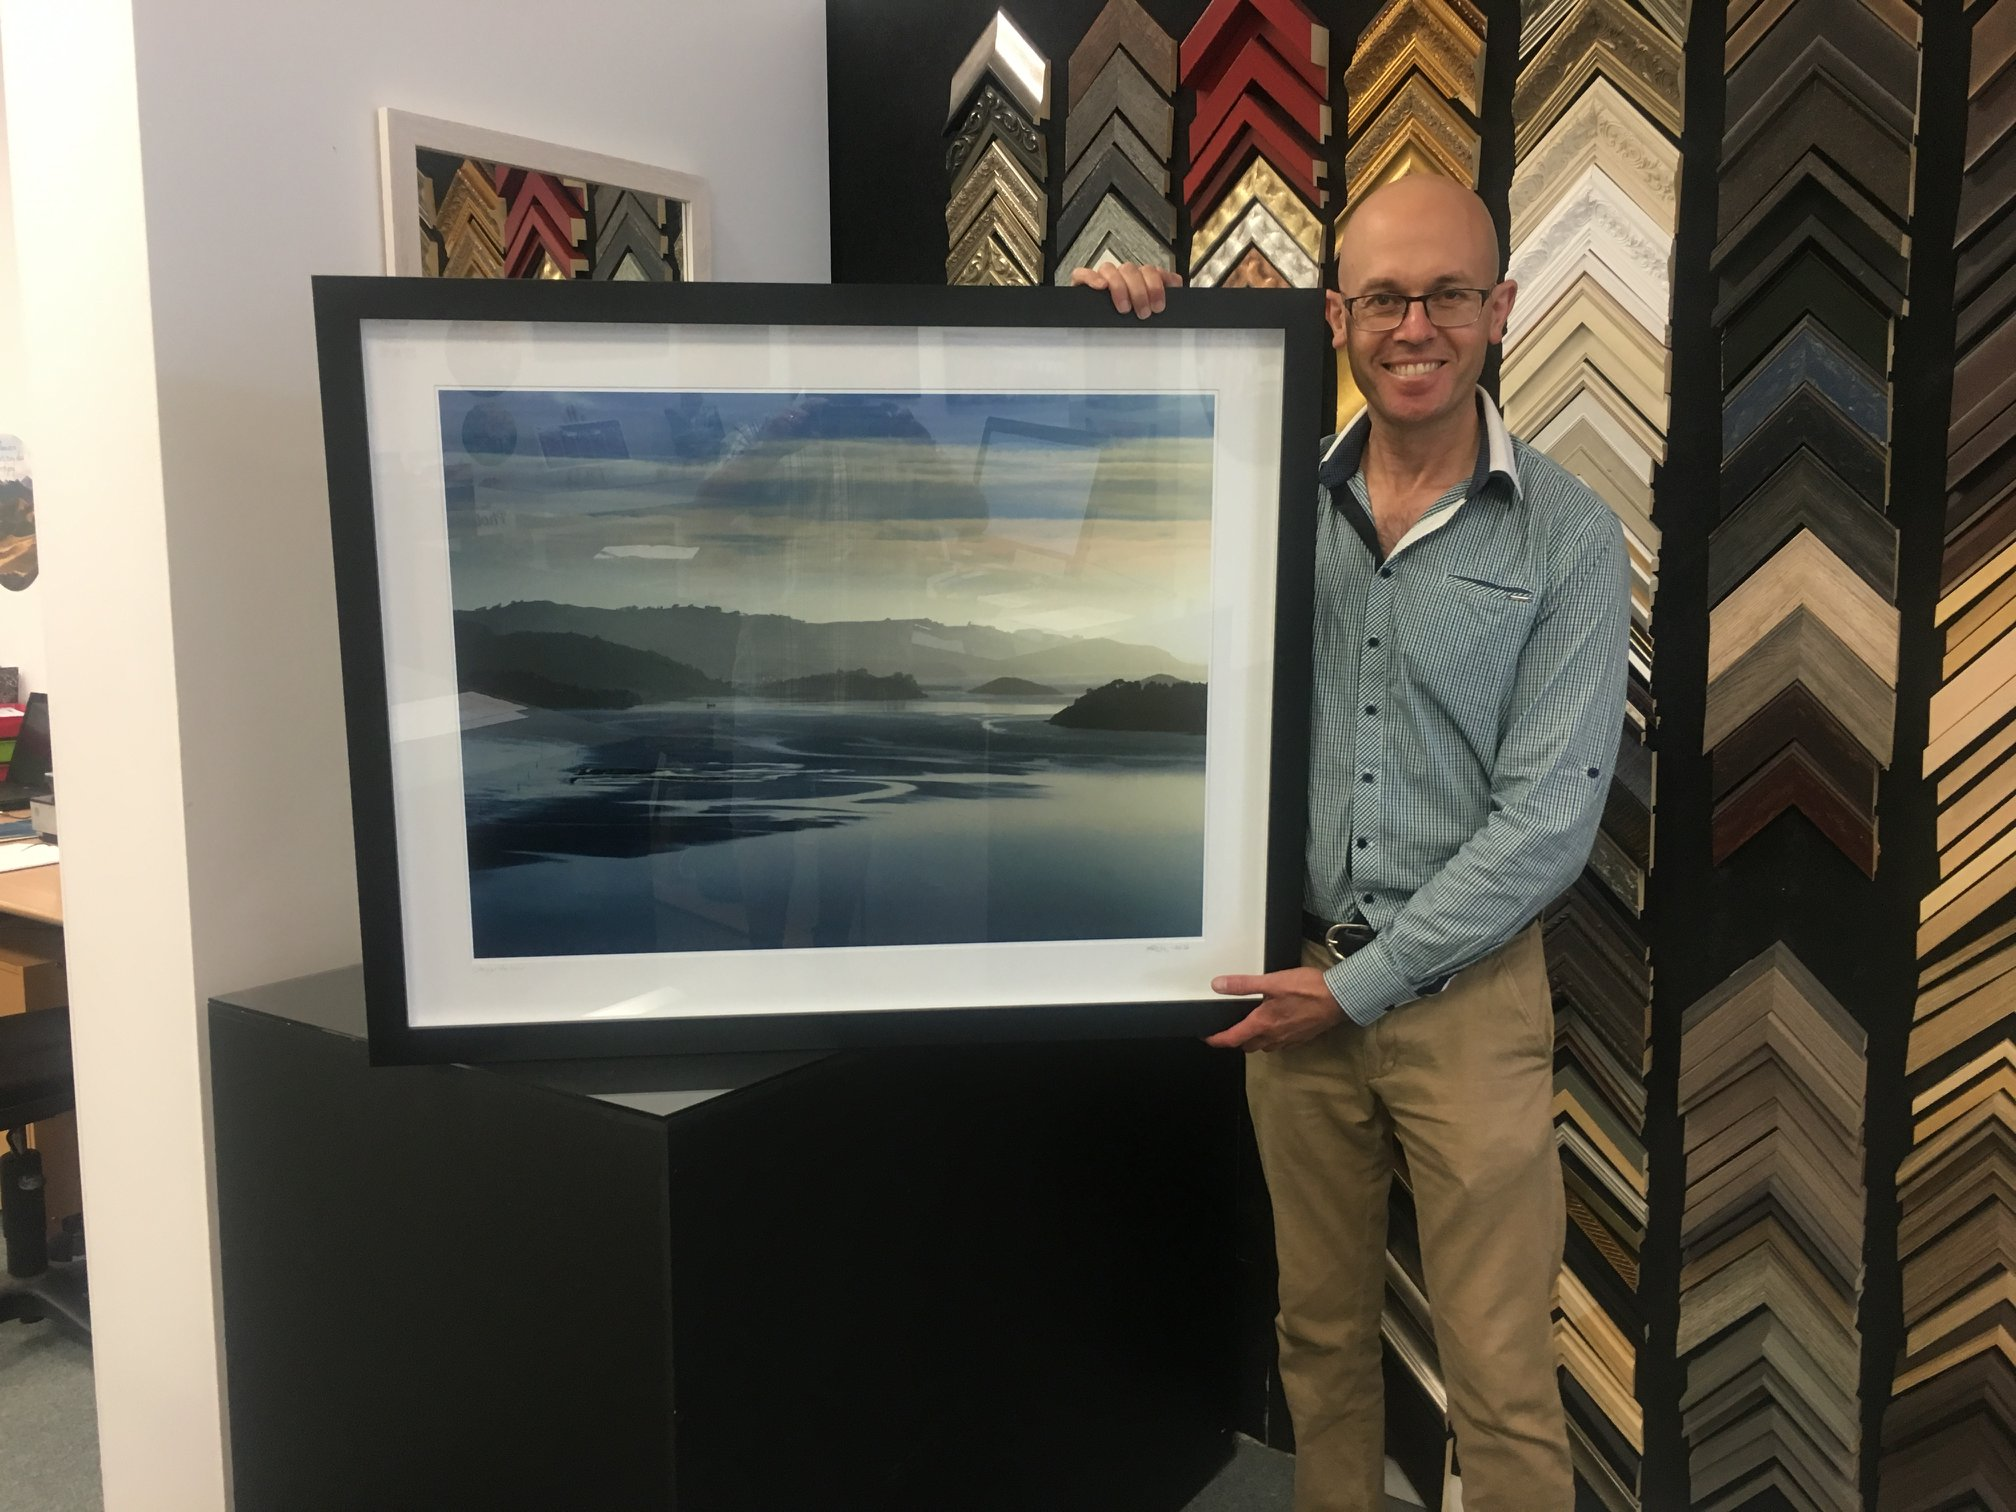 Auctioned image of Otago Harbour for charity